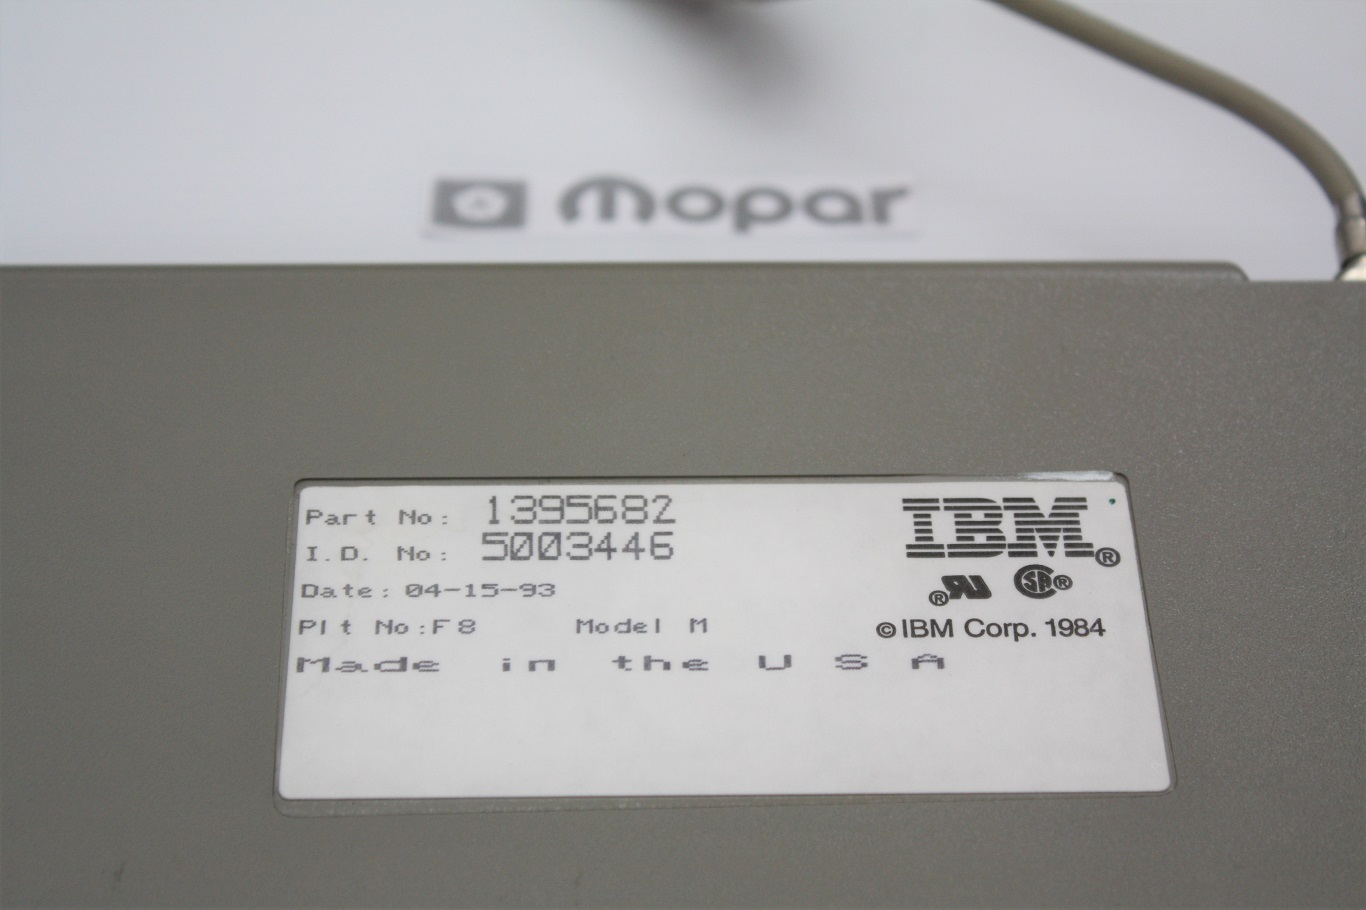 IBM INDY SSK - Mopar IBM 1395682 rear label.JPG